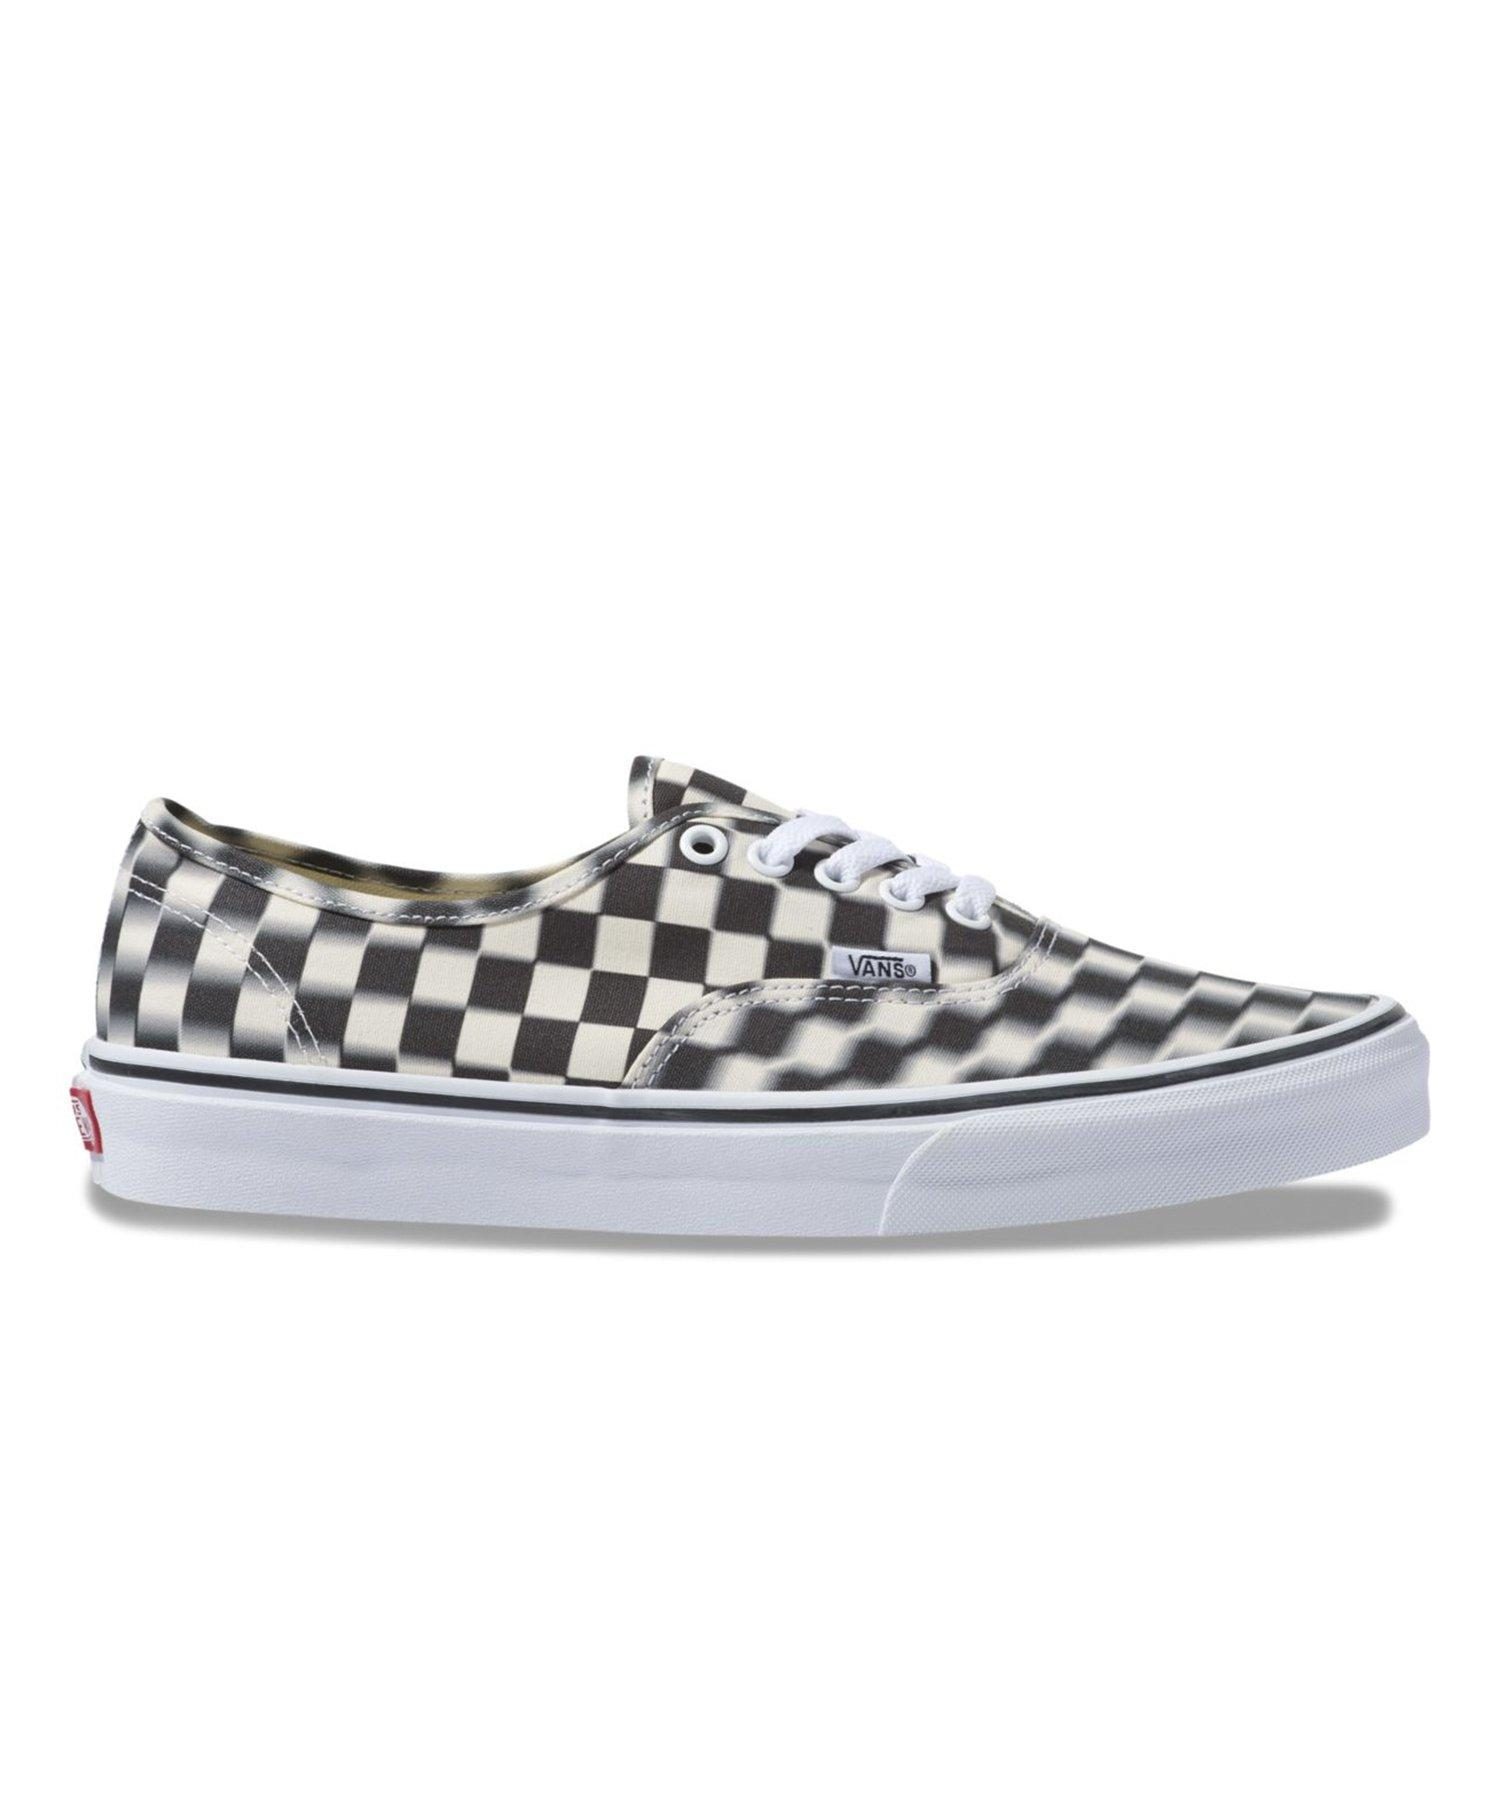 d102062624f Vans Blur Check Authentic in White for Men - Save 43% - Lyst